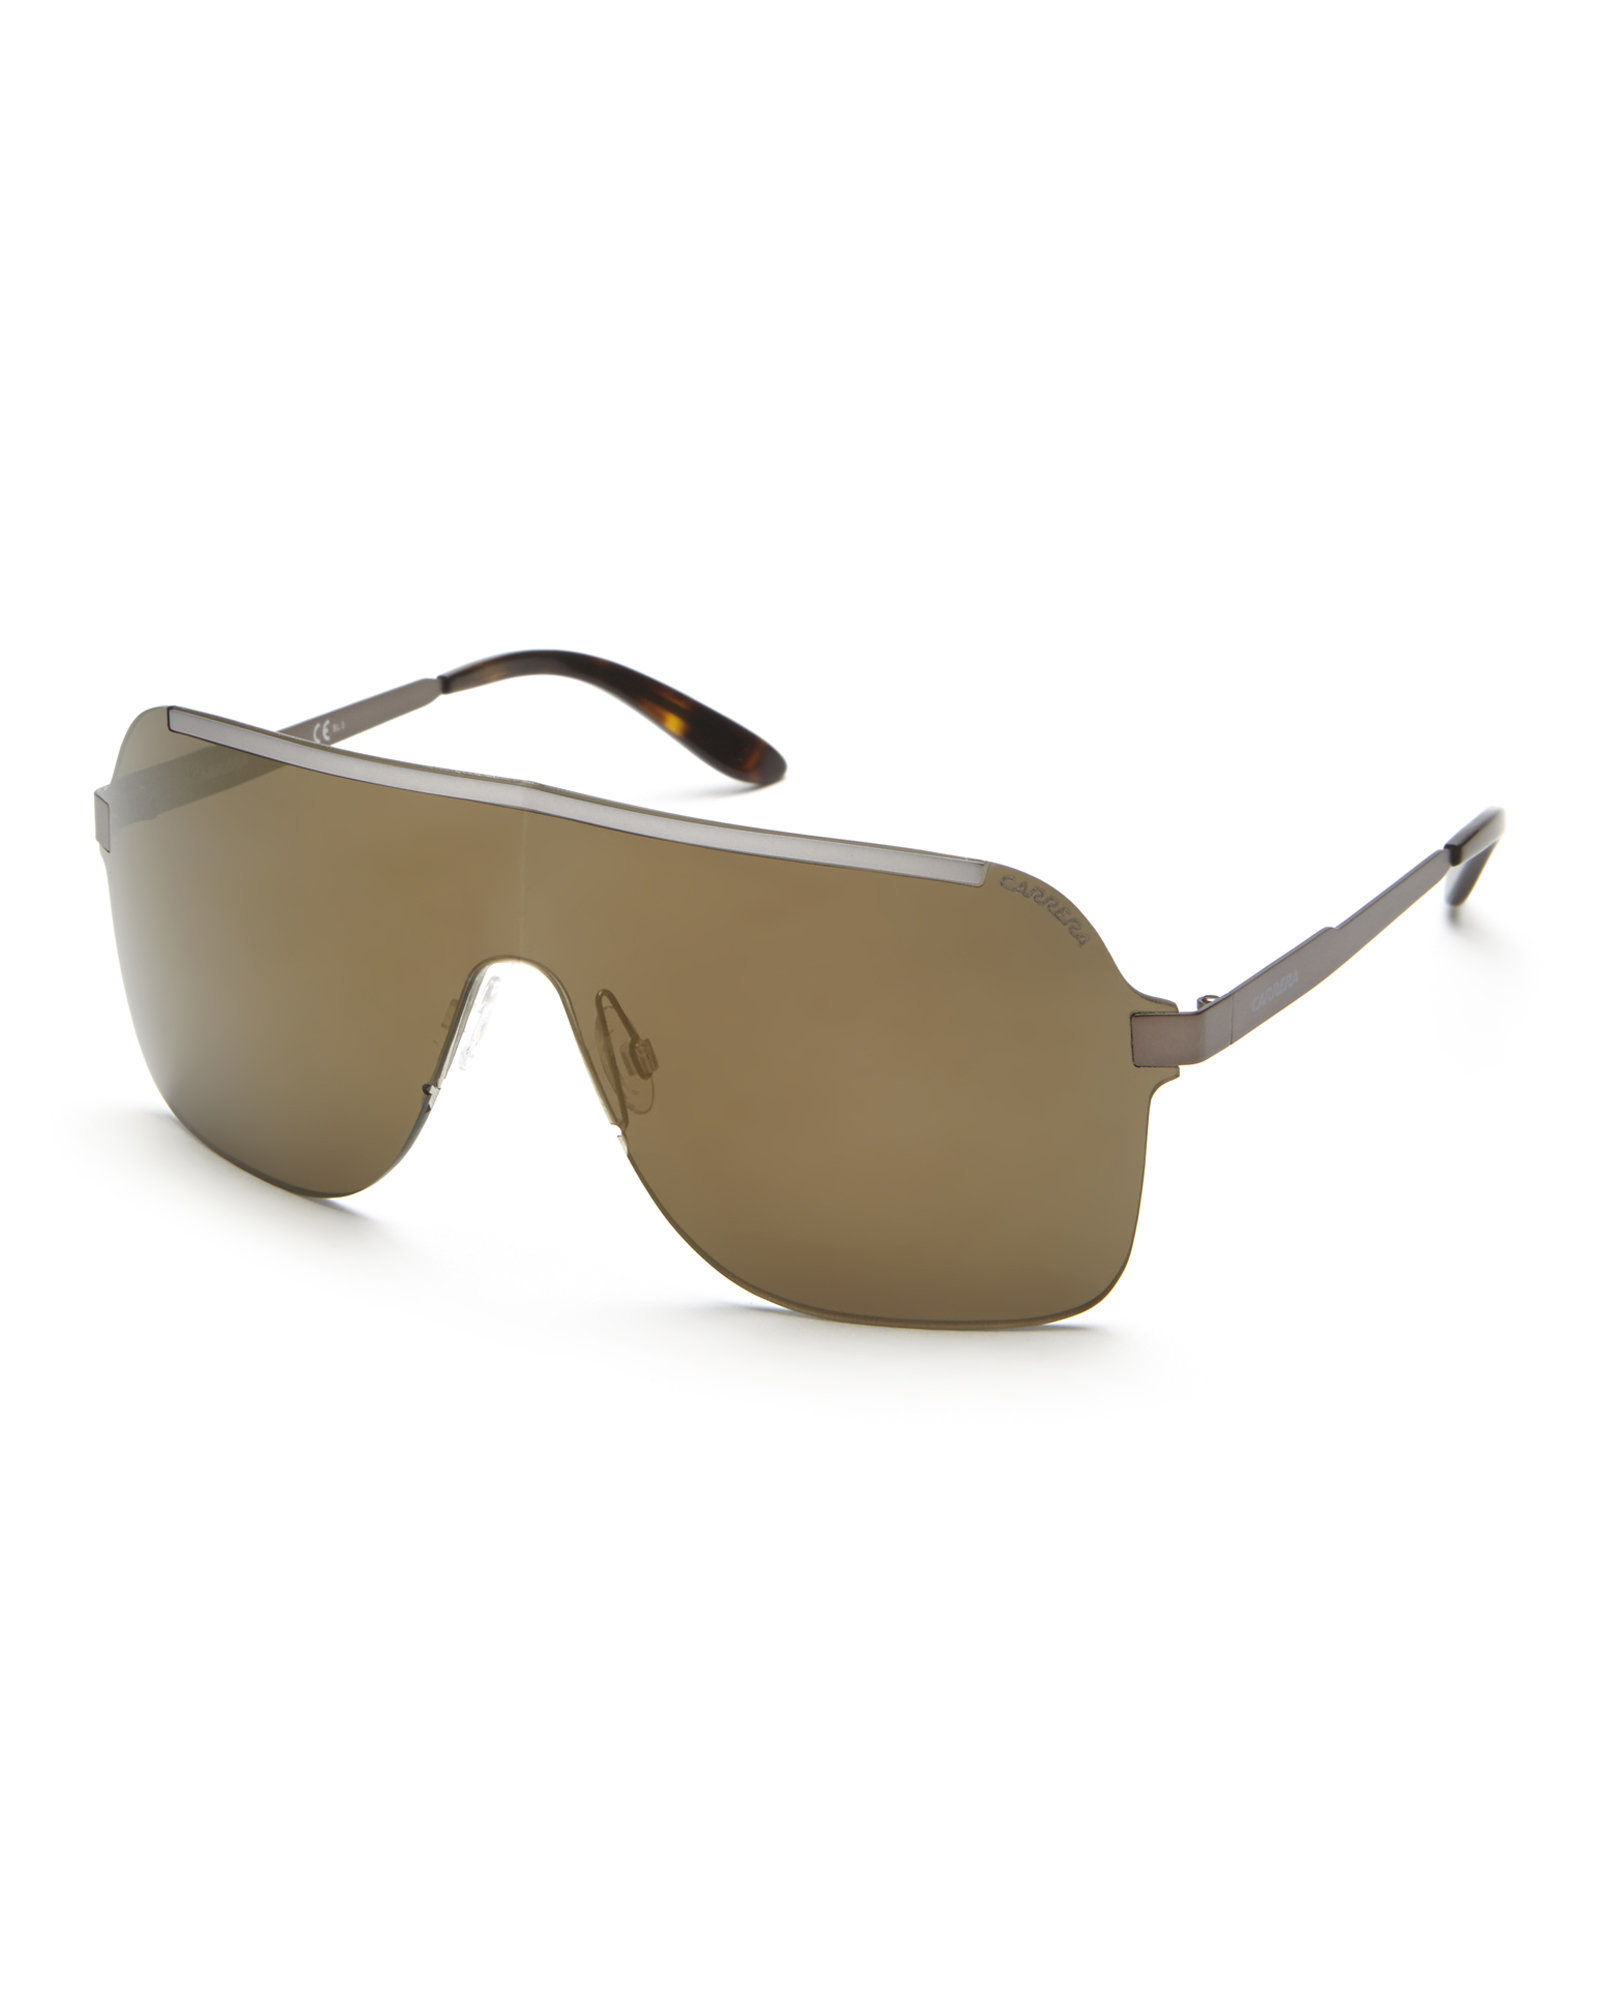 af96a095ea49 Carrera 93/S Rimless Shield Sunglasses in Brown for Men - Lyst